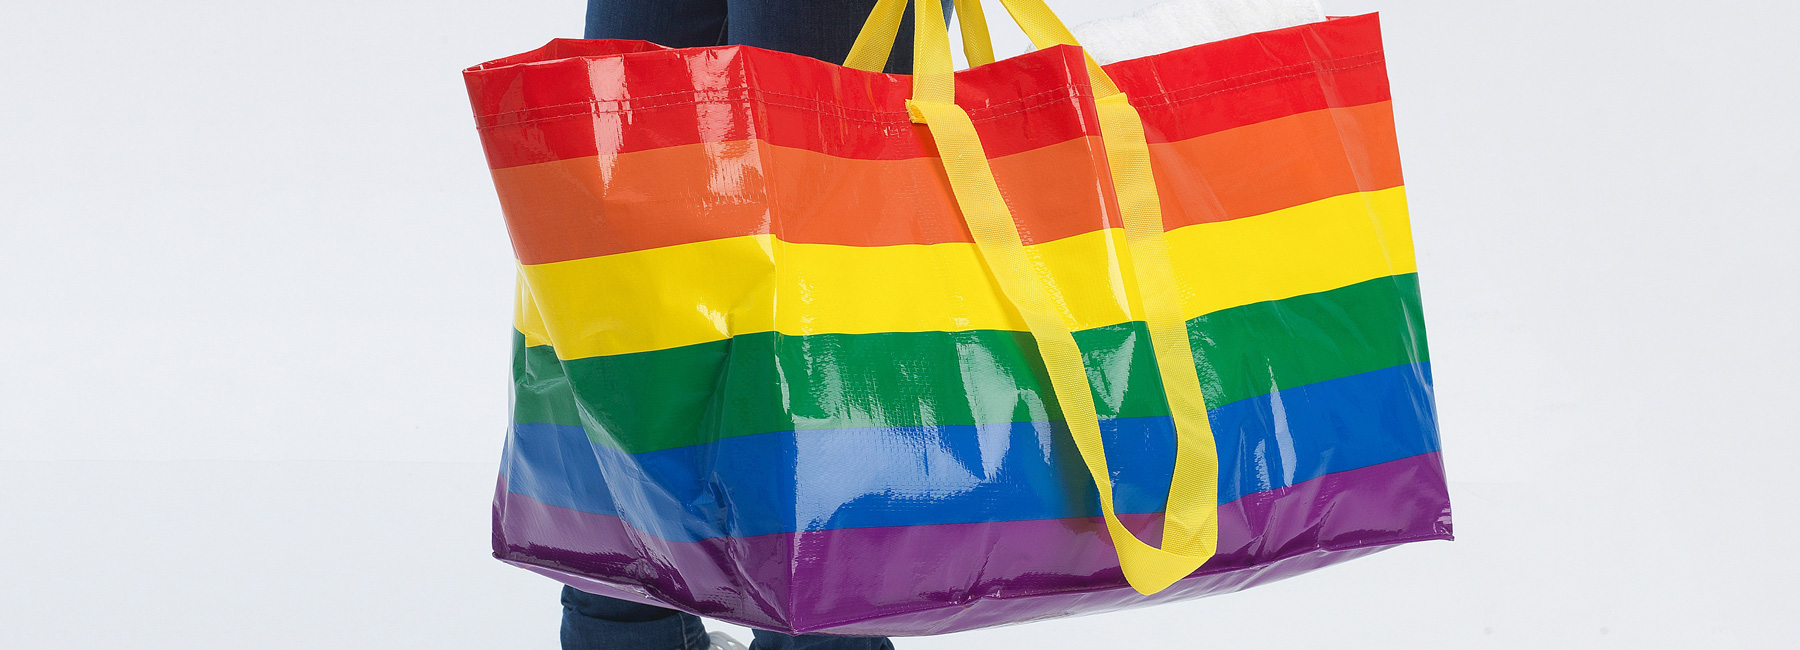 Ikea Tv Wagen Ikea Releases Limited Edition Rainbow Shopping Bag In Celebration Of